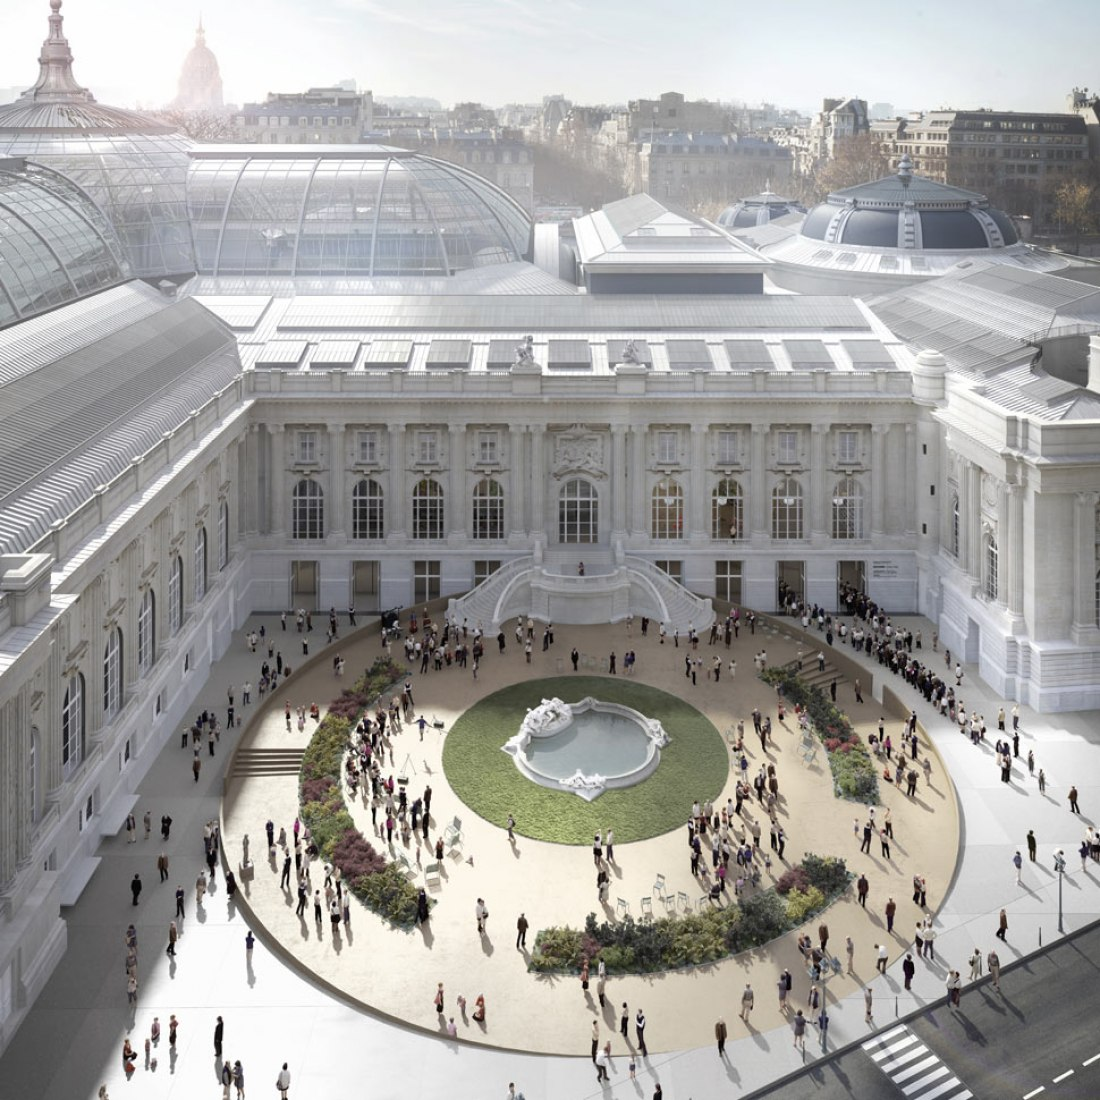 Jean Perrin Square's metamorphosis. Renovation of Le Grand Palais des Champs Elysées by LAN.